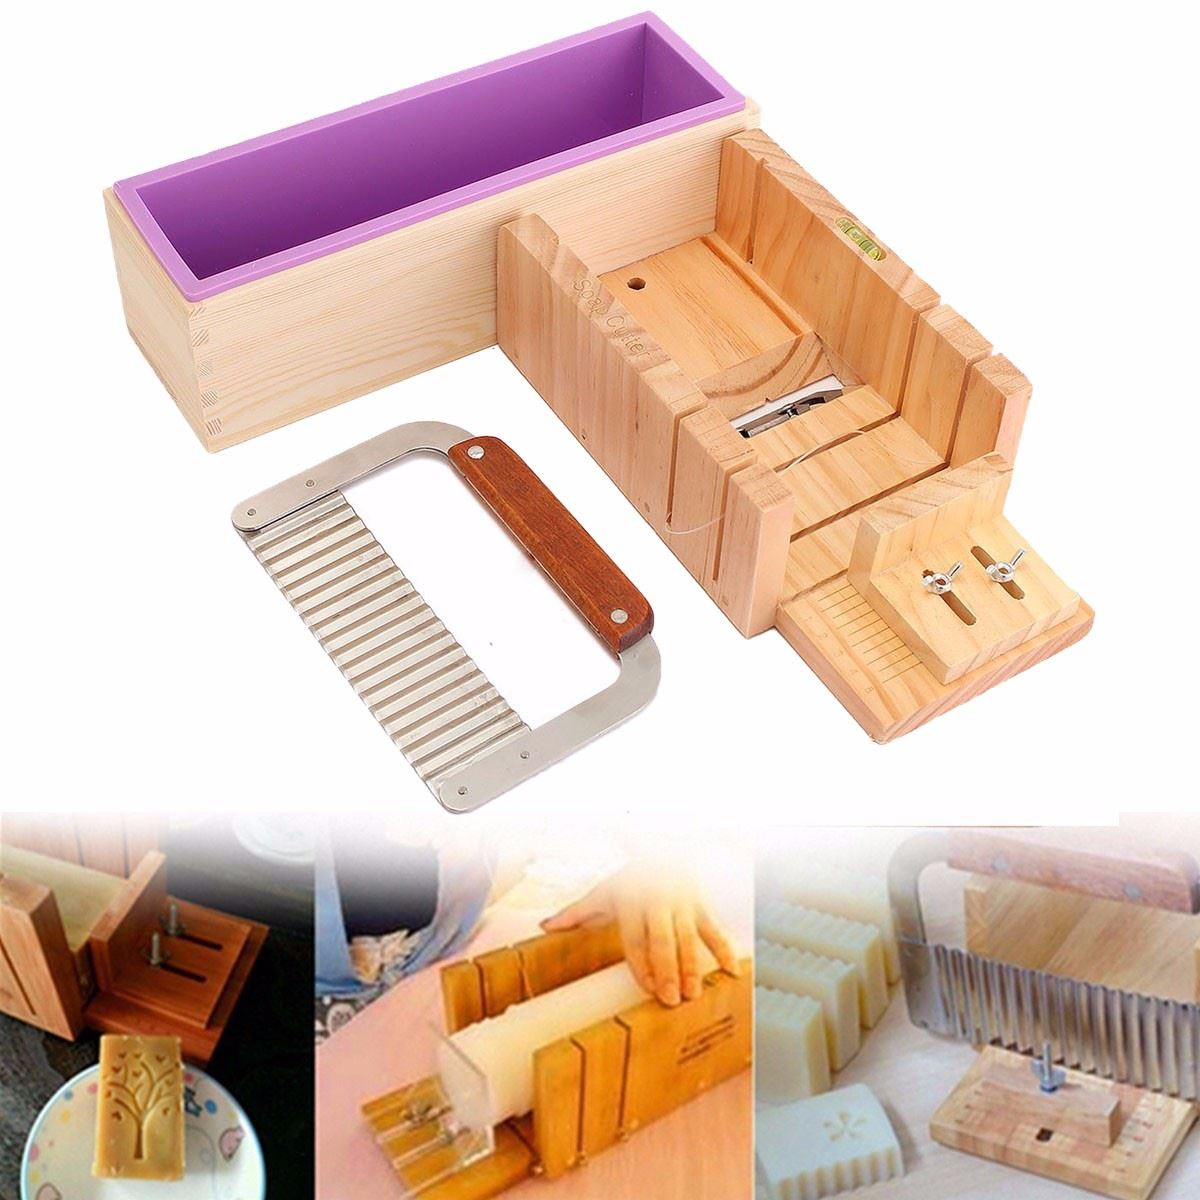 Wooden Soap Loaf Bar Cake Cutter Box Wavy Straight Cutter Slicer DIY Soap Mould Tool With